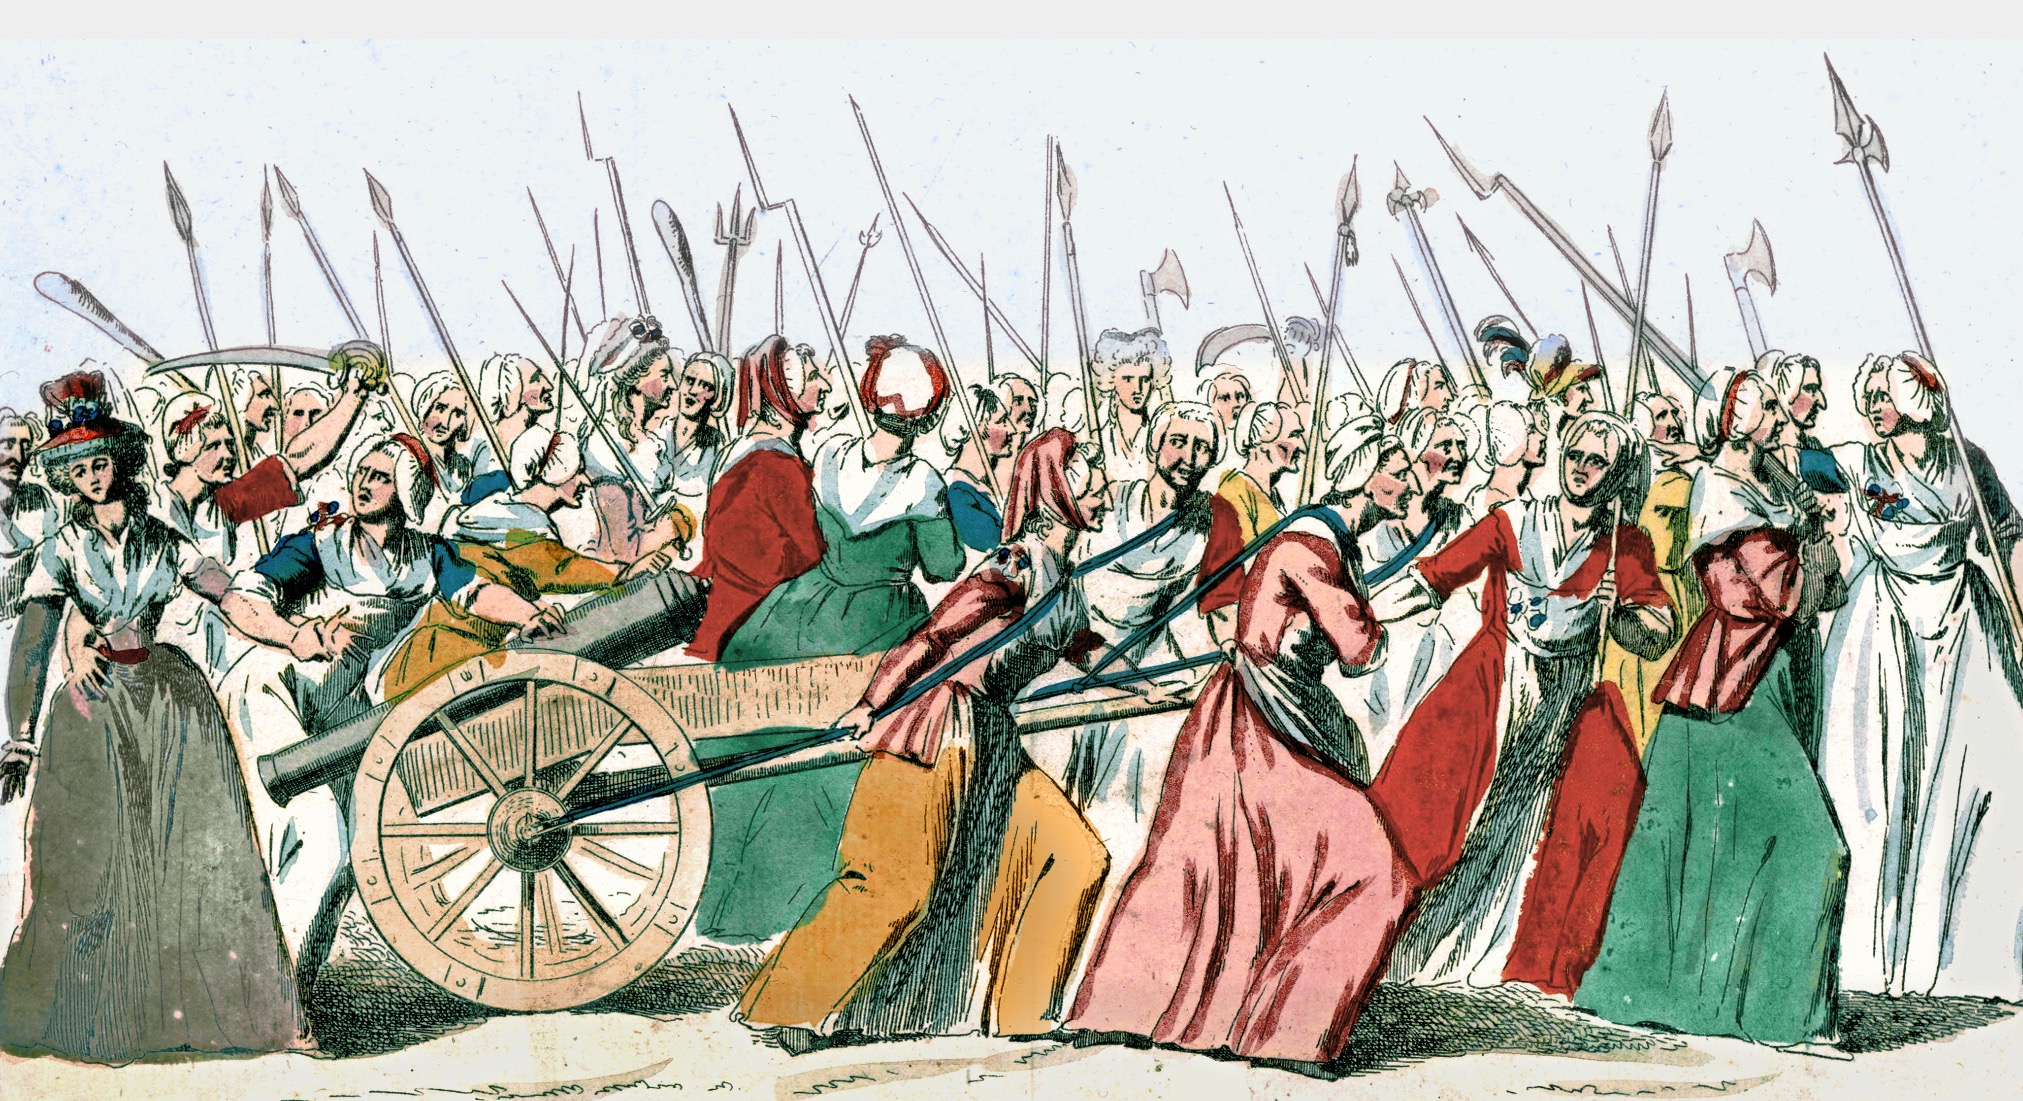 The March of the women on Versailles at the outset of the French Revolution